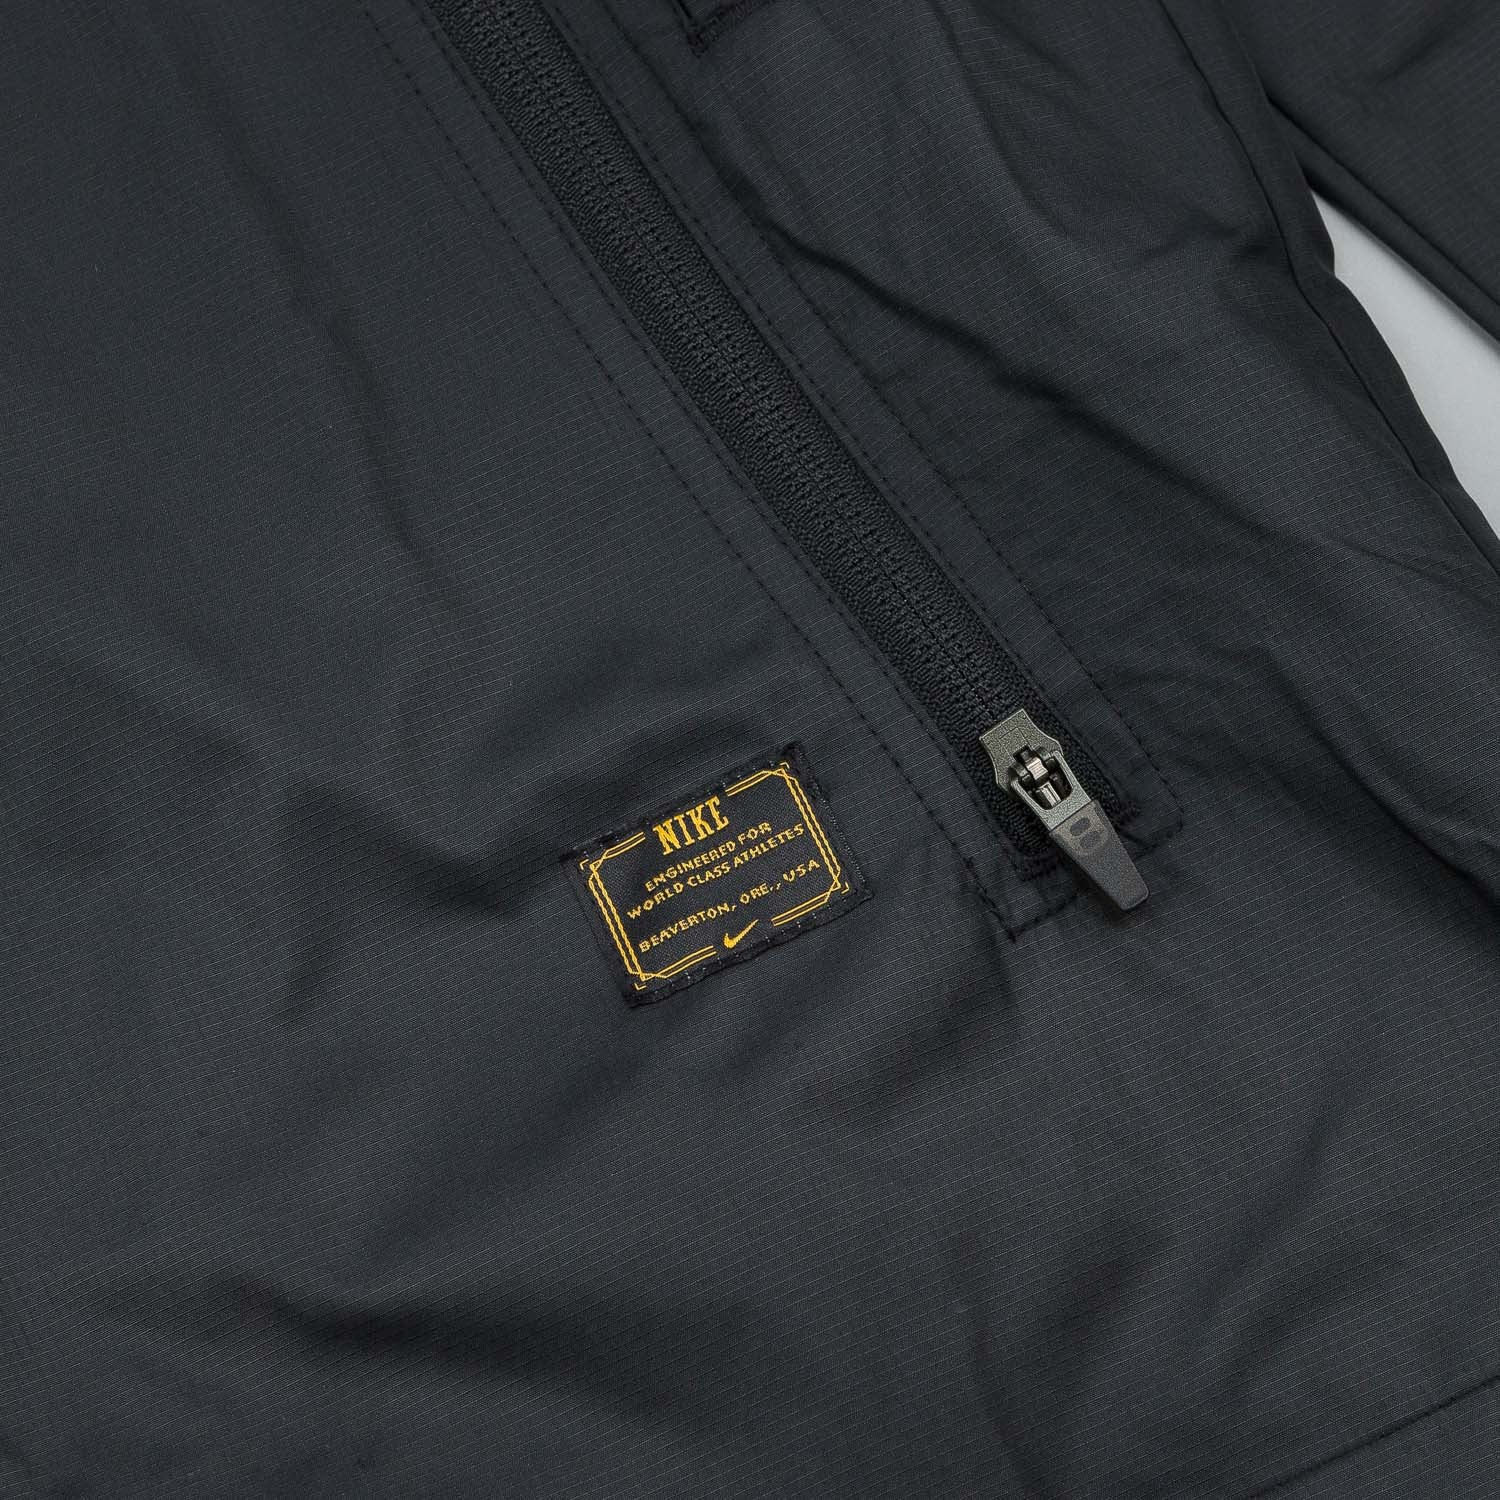 Nike SB Packable Fishtail Windbreaker Jacket - Black